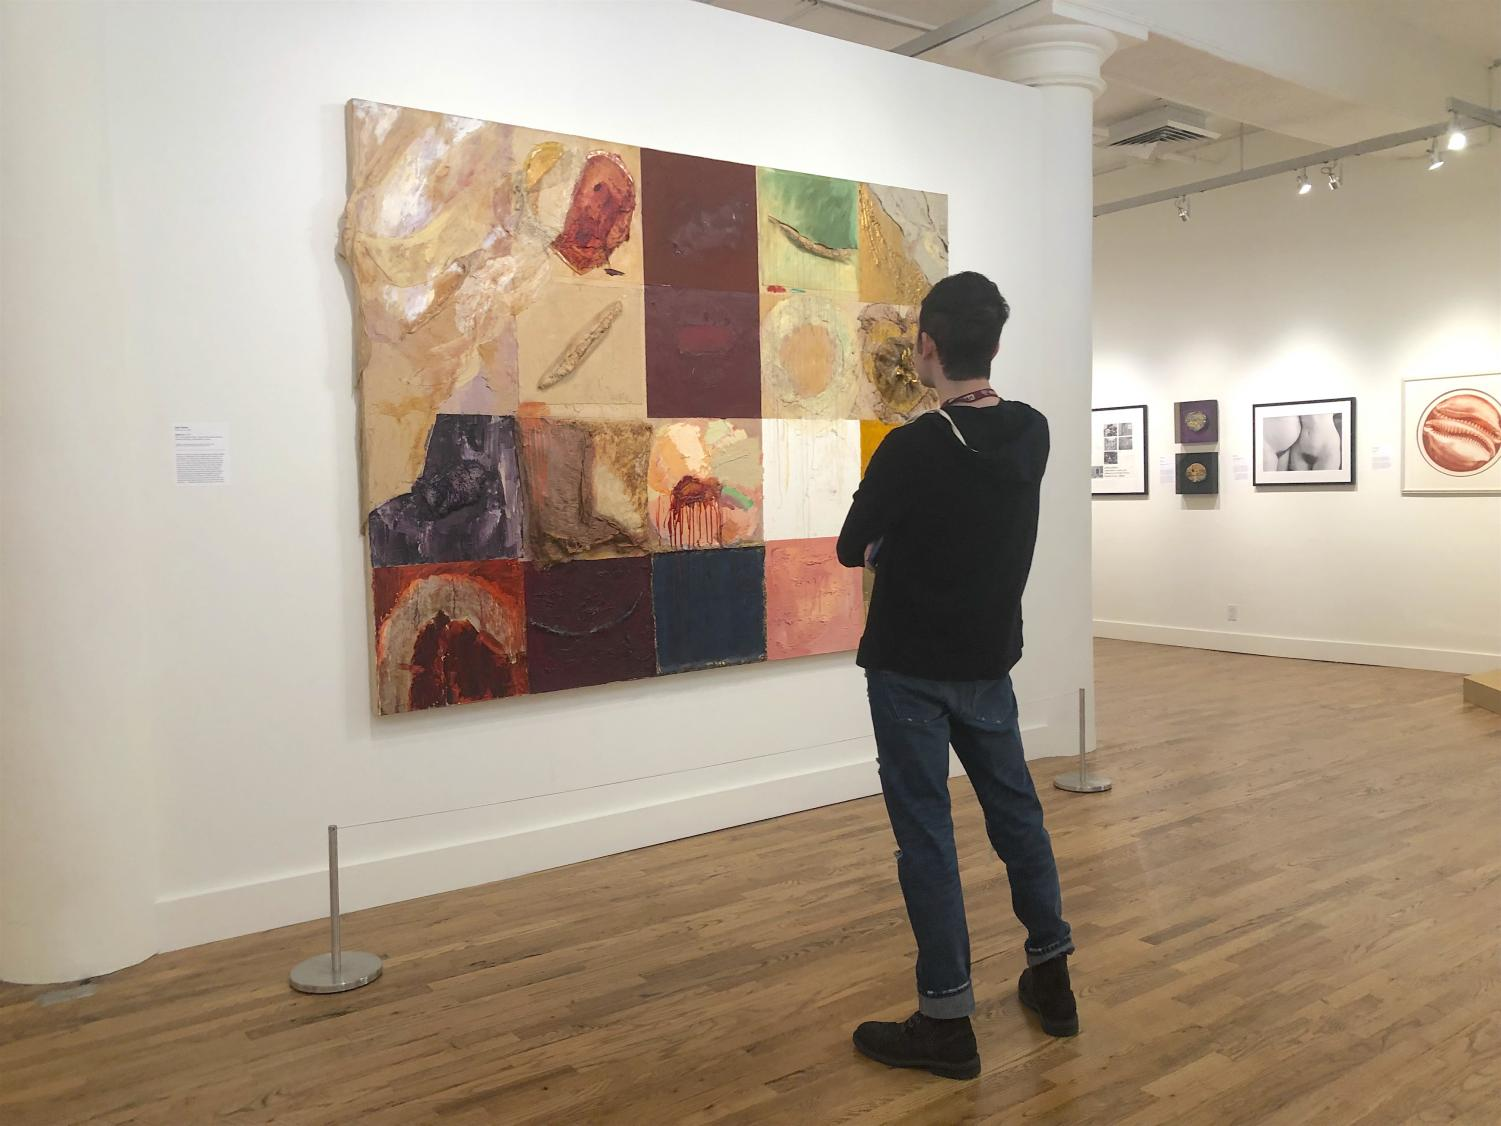 Liam Otero FCRH '20 looks at a work of art at the exhibit. (Sophia Giatzis/ The Fordham Ram)